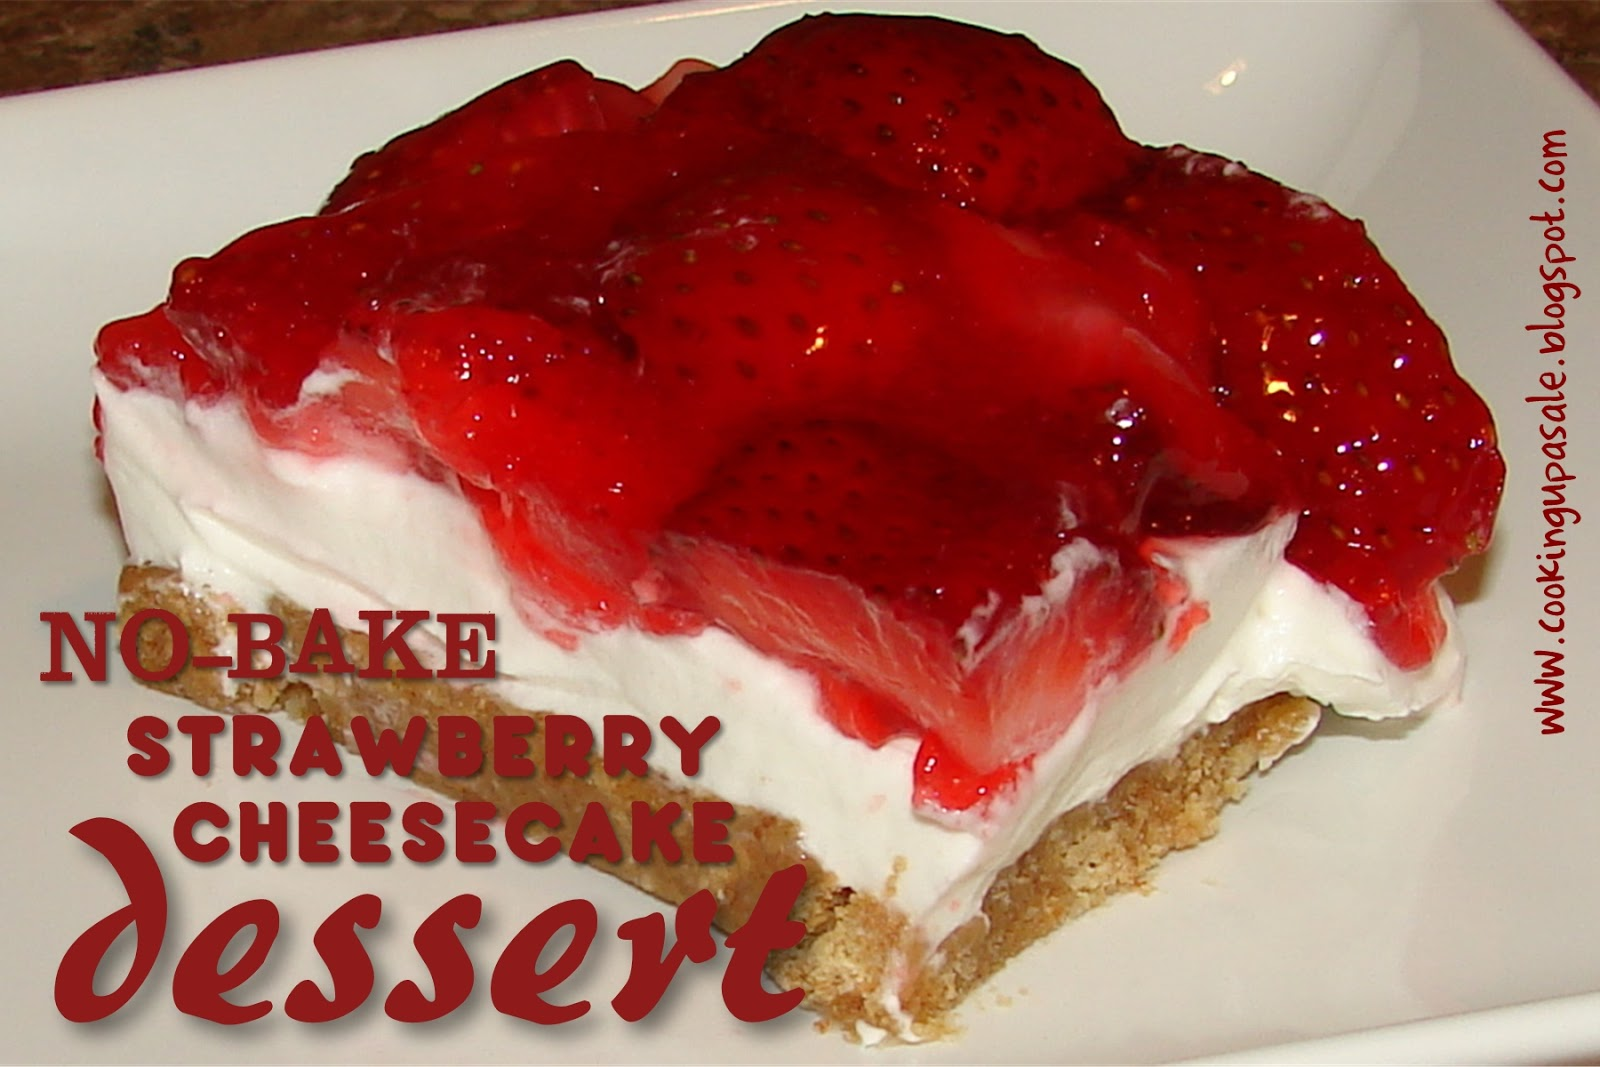 Jello No Bake Strawberry Cheesecake No-bake strawberry cheesecake